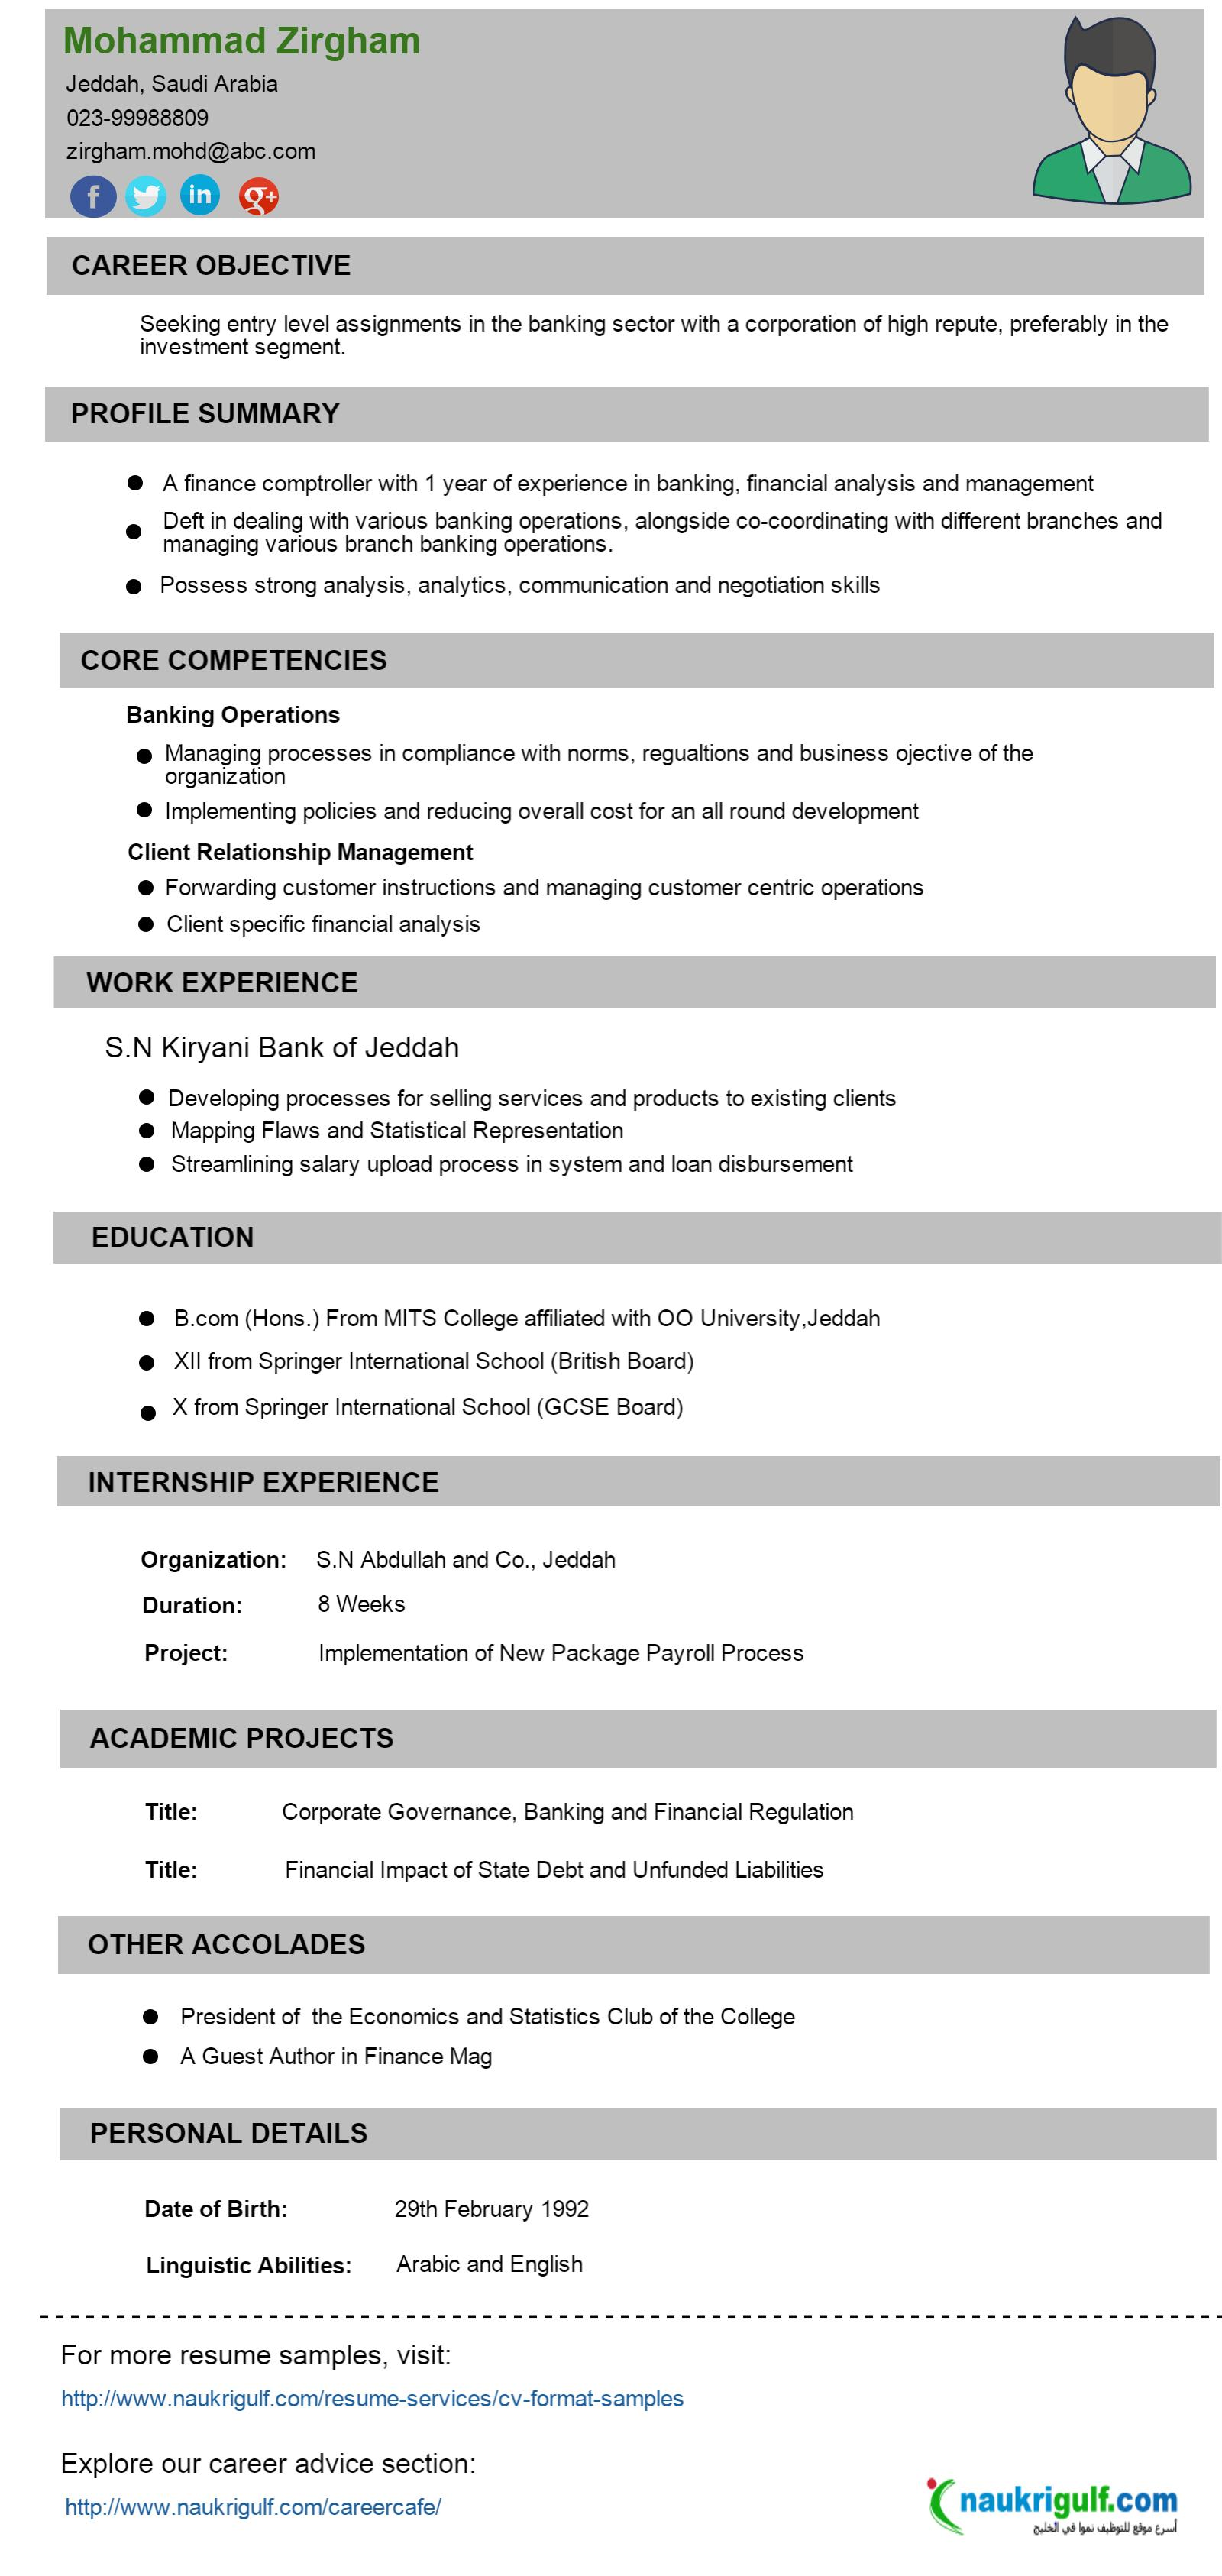 cv format banking finance resume sample naukriuglf com resume format for banking finance job